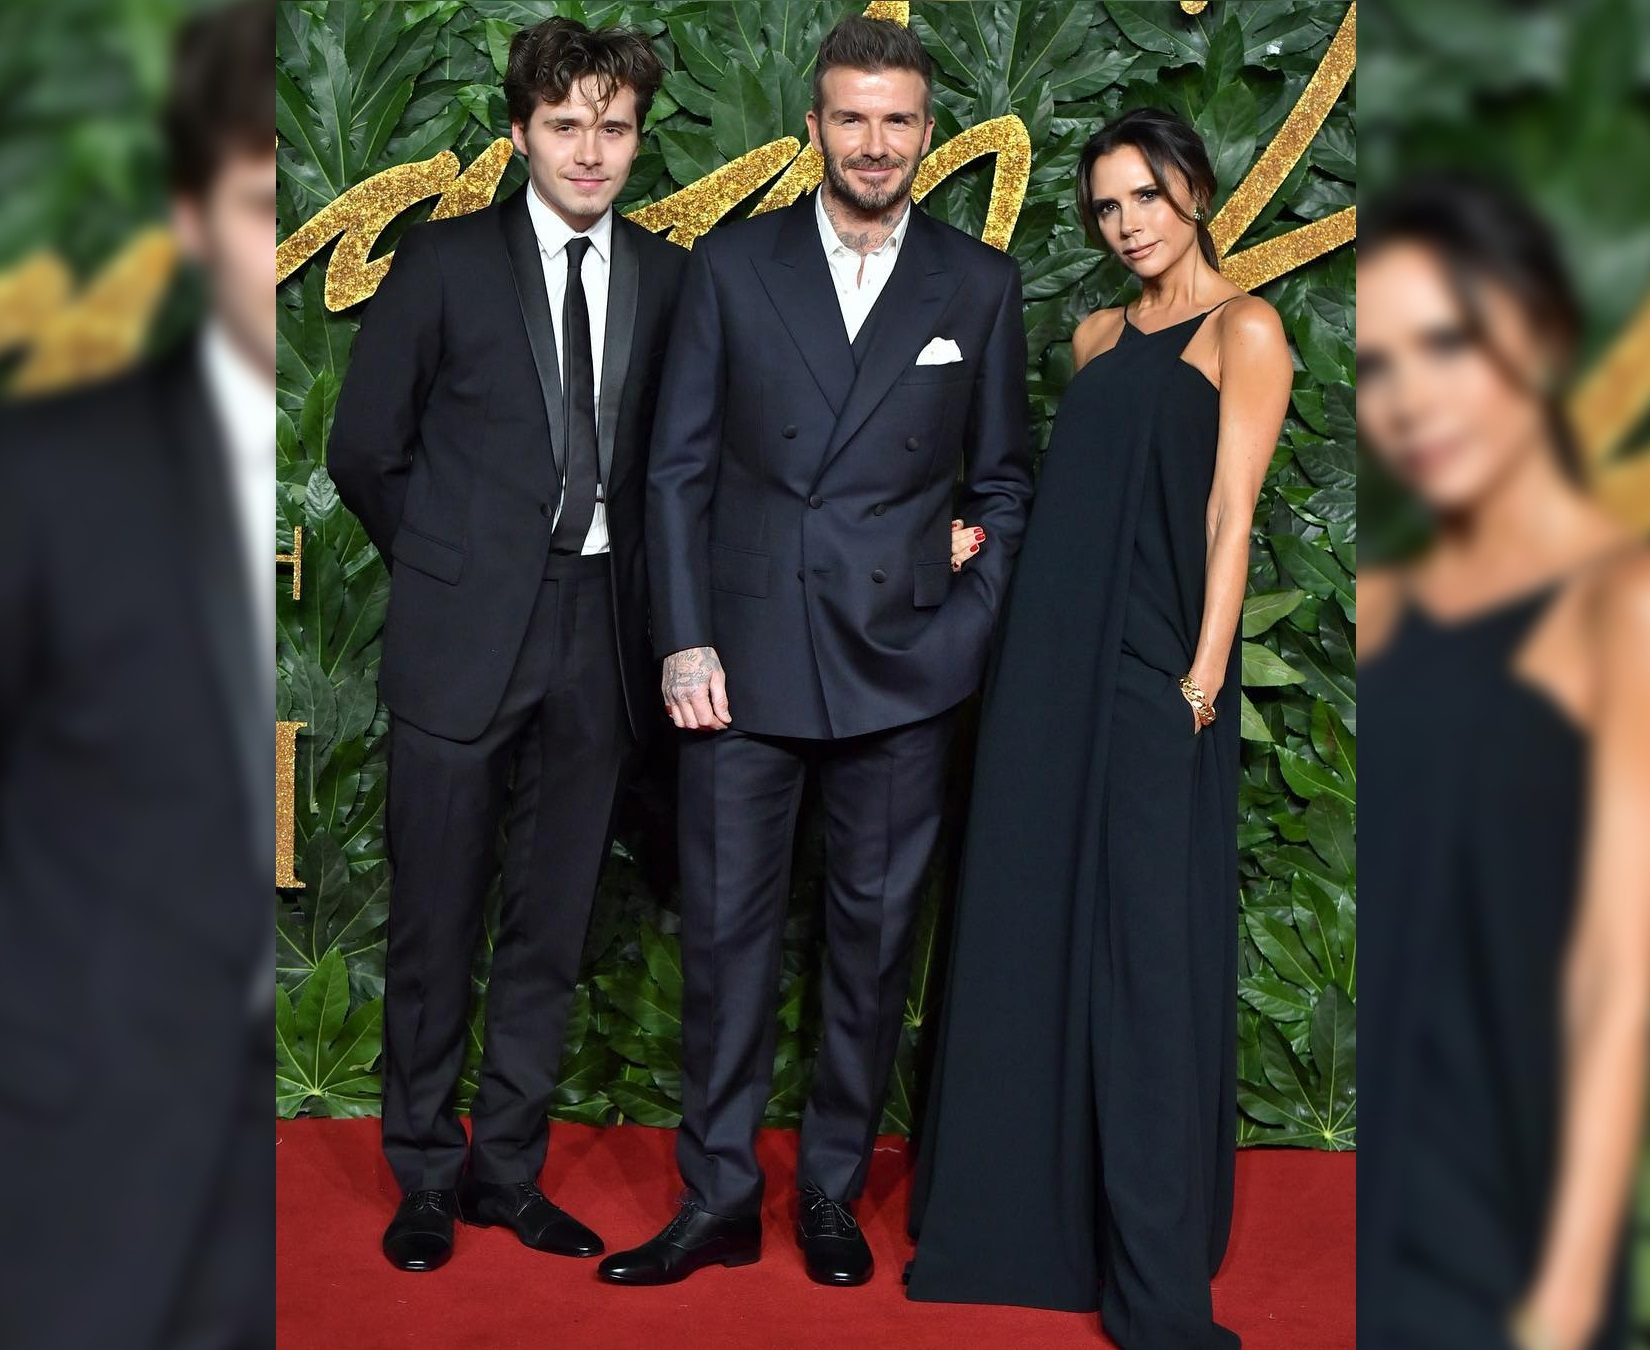 SPOTTED: The Beckhams Go Formal for The Fashion Awards 2018